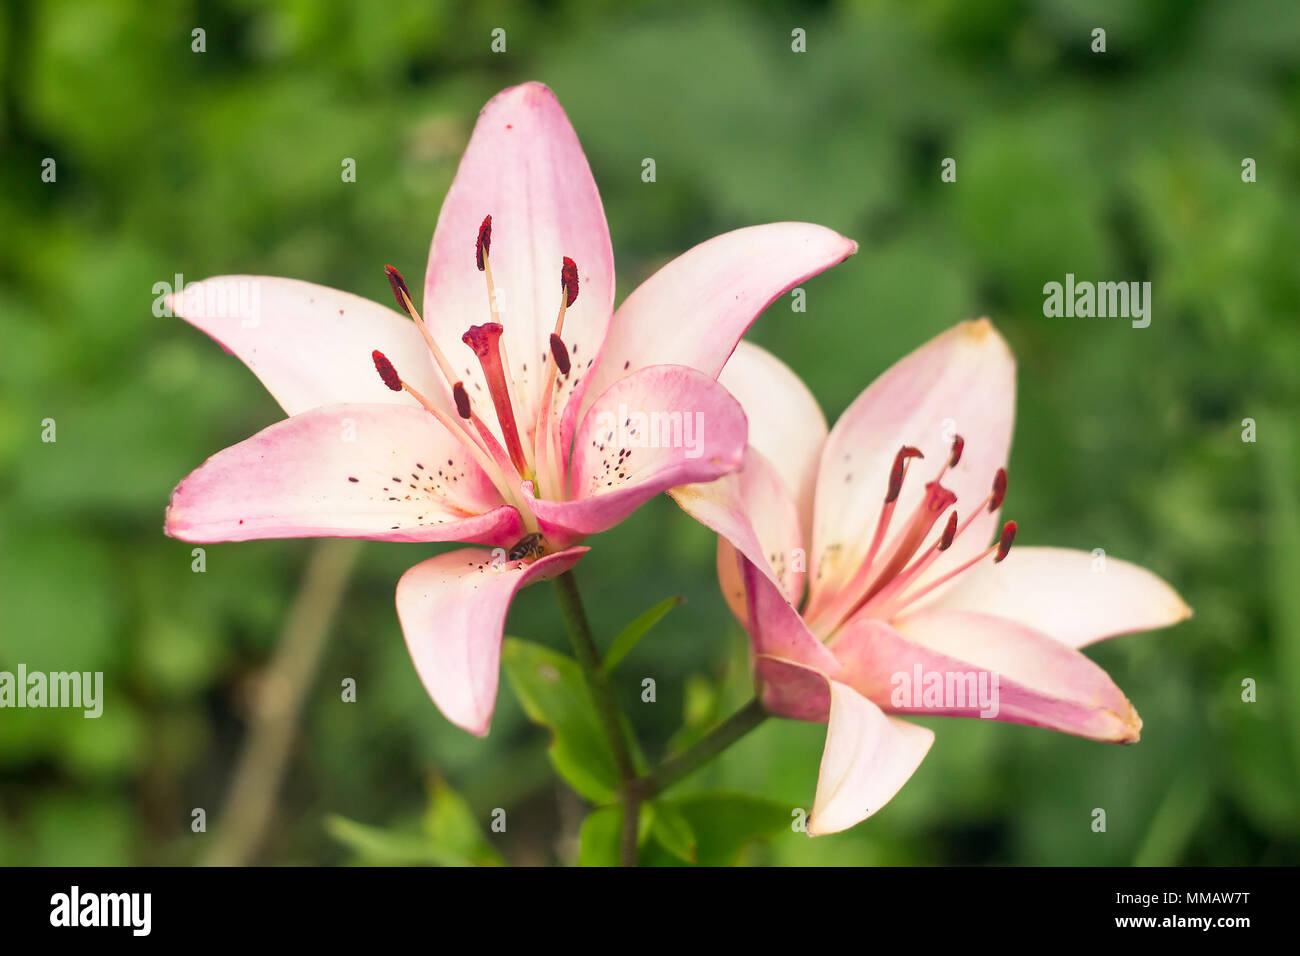 Two dark pink lily flowers stock photos two dark pink lily flowers two pink lilies against green grass stock image izmirmasajfo